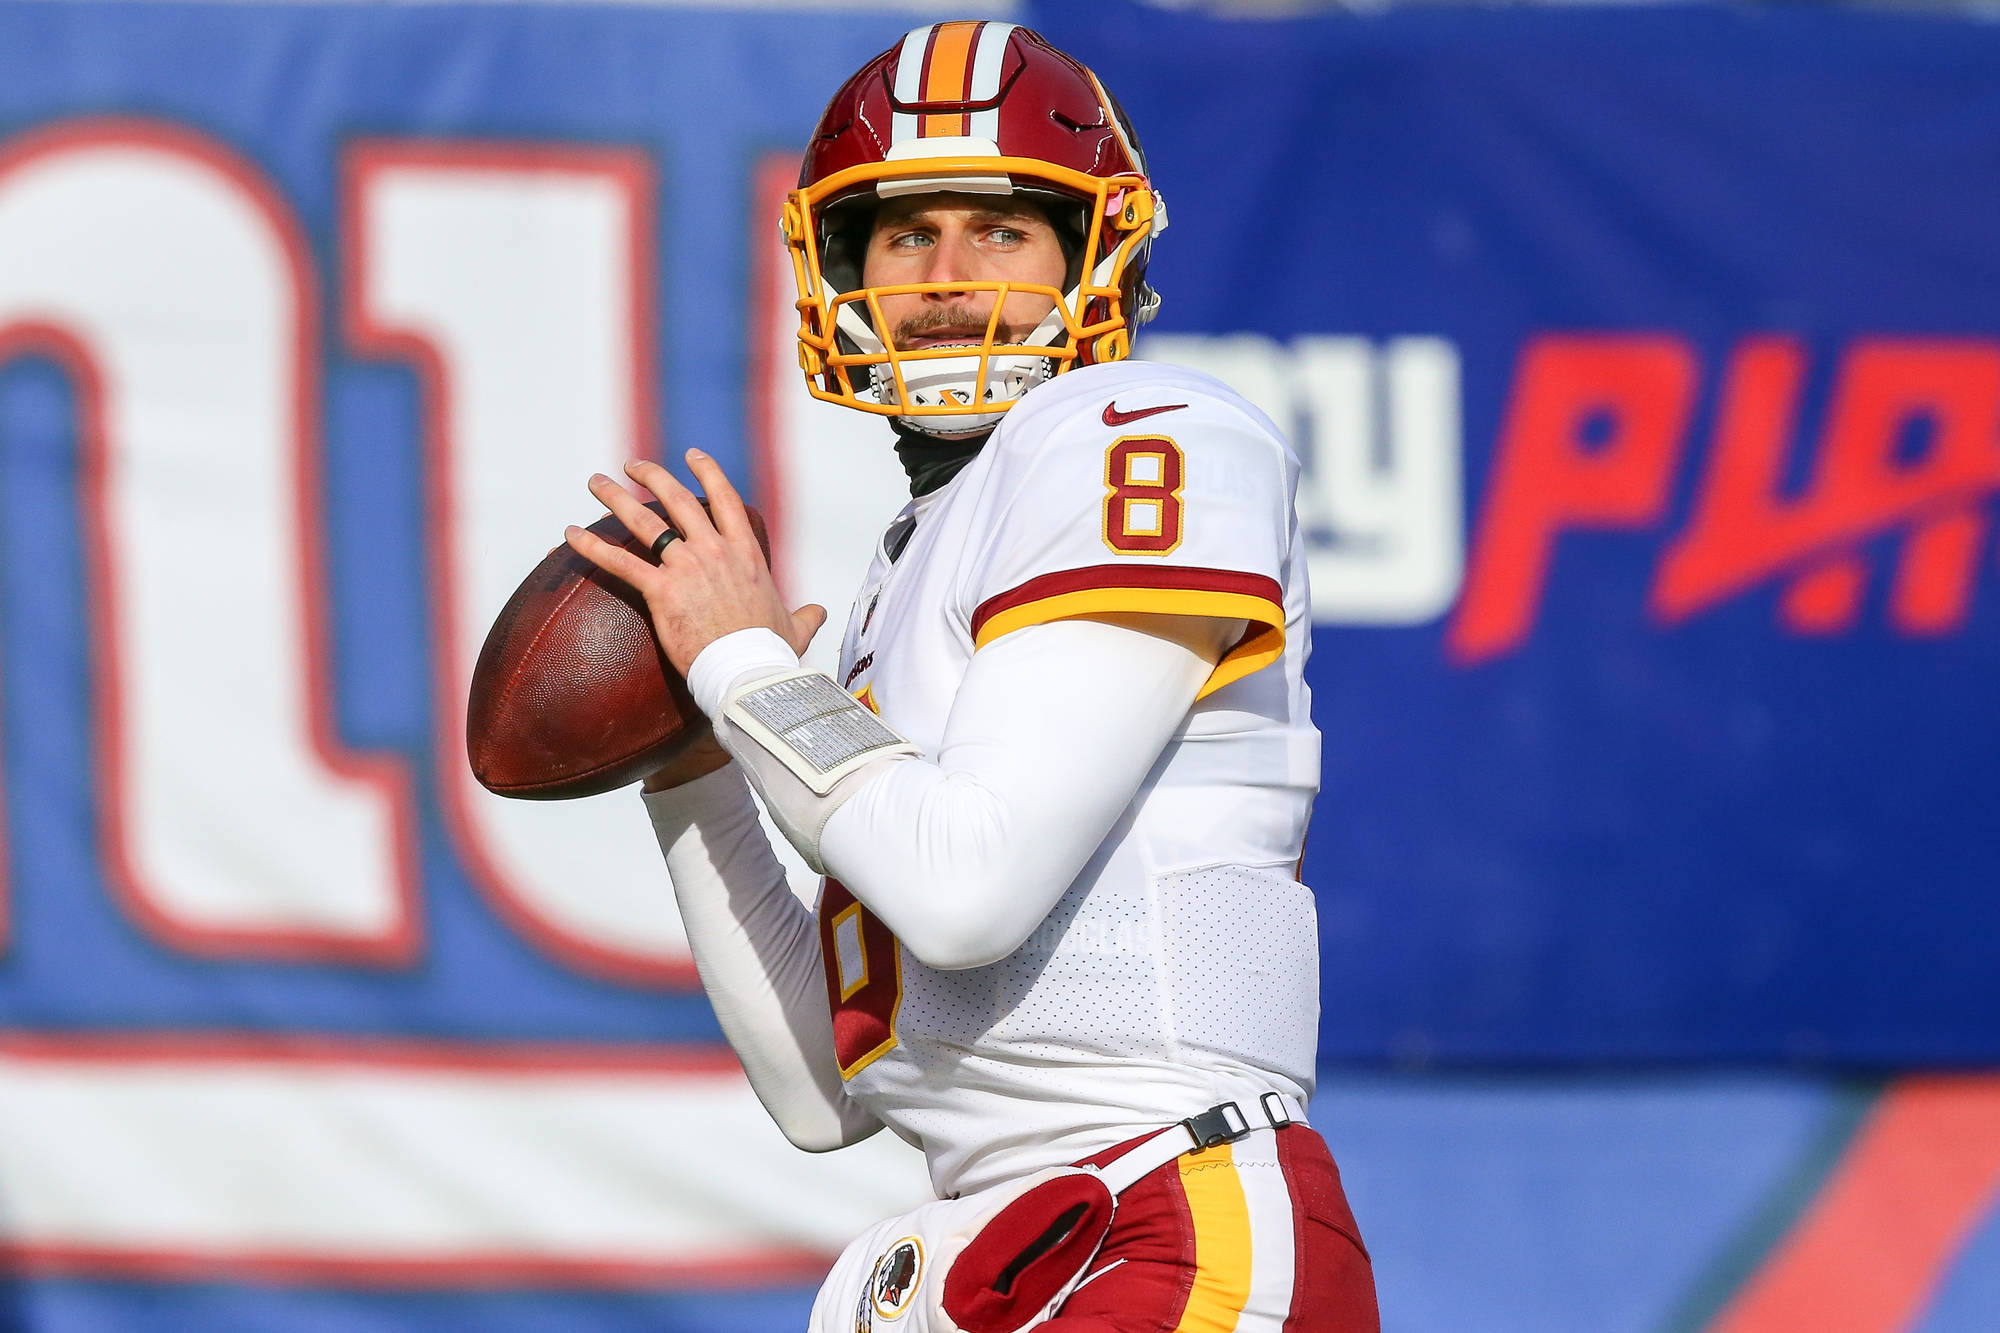 What's the best landing spot for Kirk Cousins? Let's weigh his options